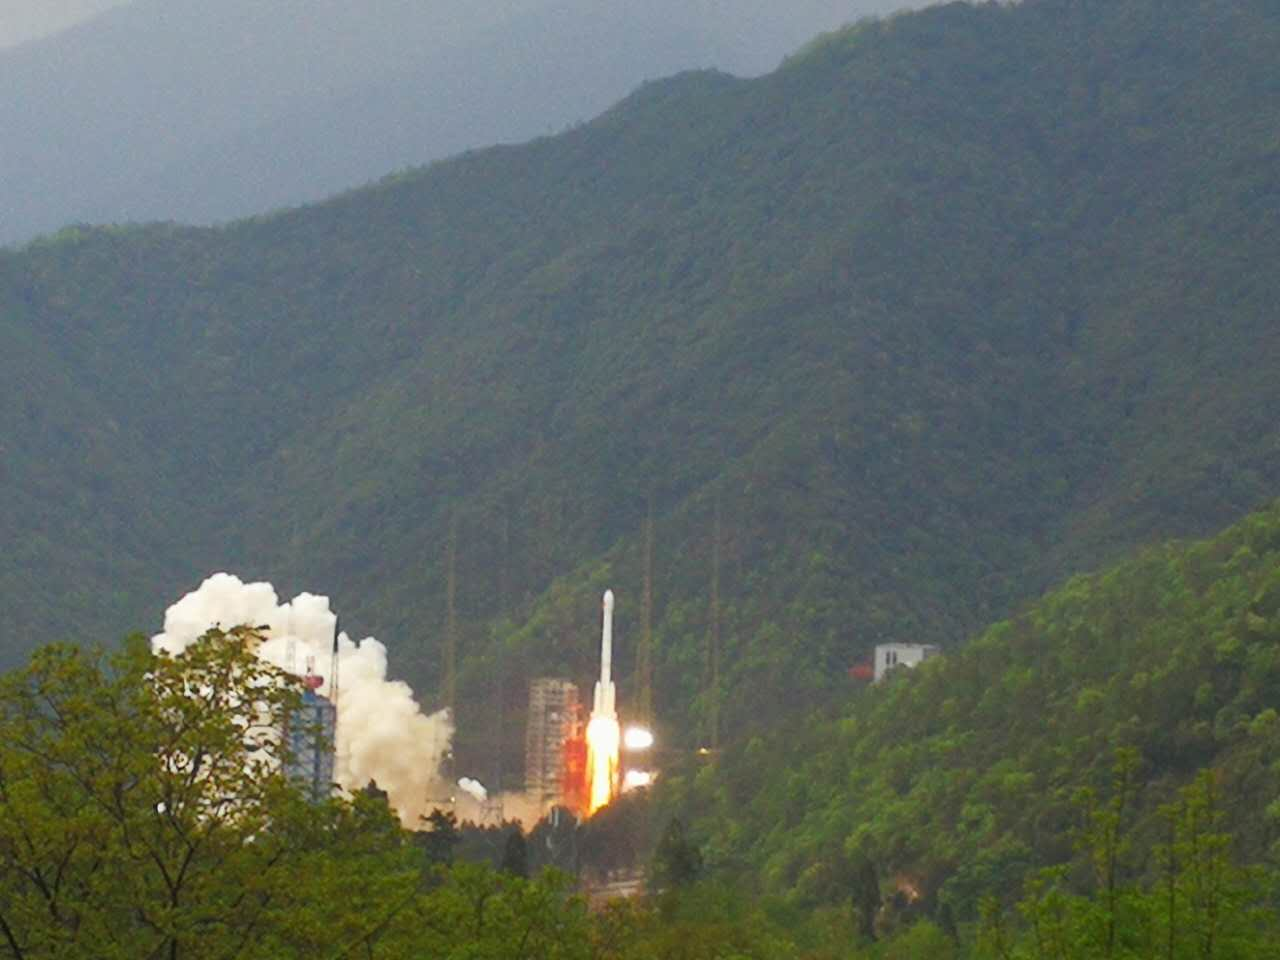 Shijian-13, China's first high-throughput communications satellite, is launched from Xichang Satellite Launch Center in southwest China's Sichuan Province at 7:04 p.m., April 12, 2017. [Photo: China Plus/Liu Yiyao]